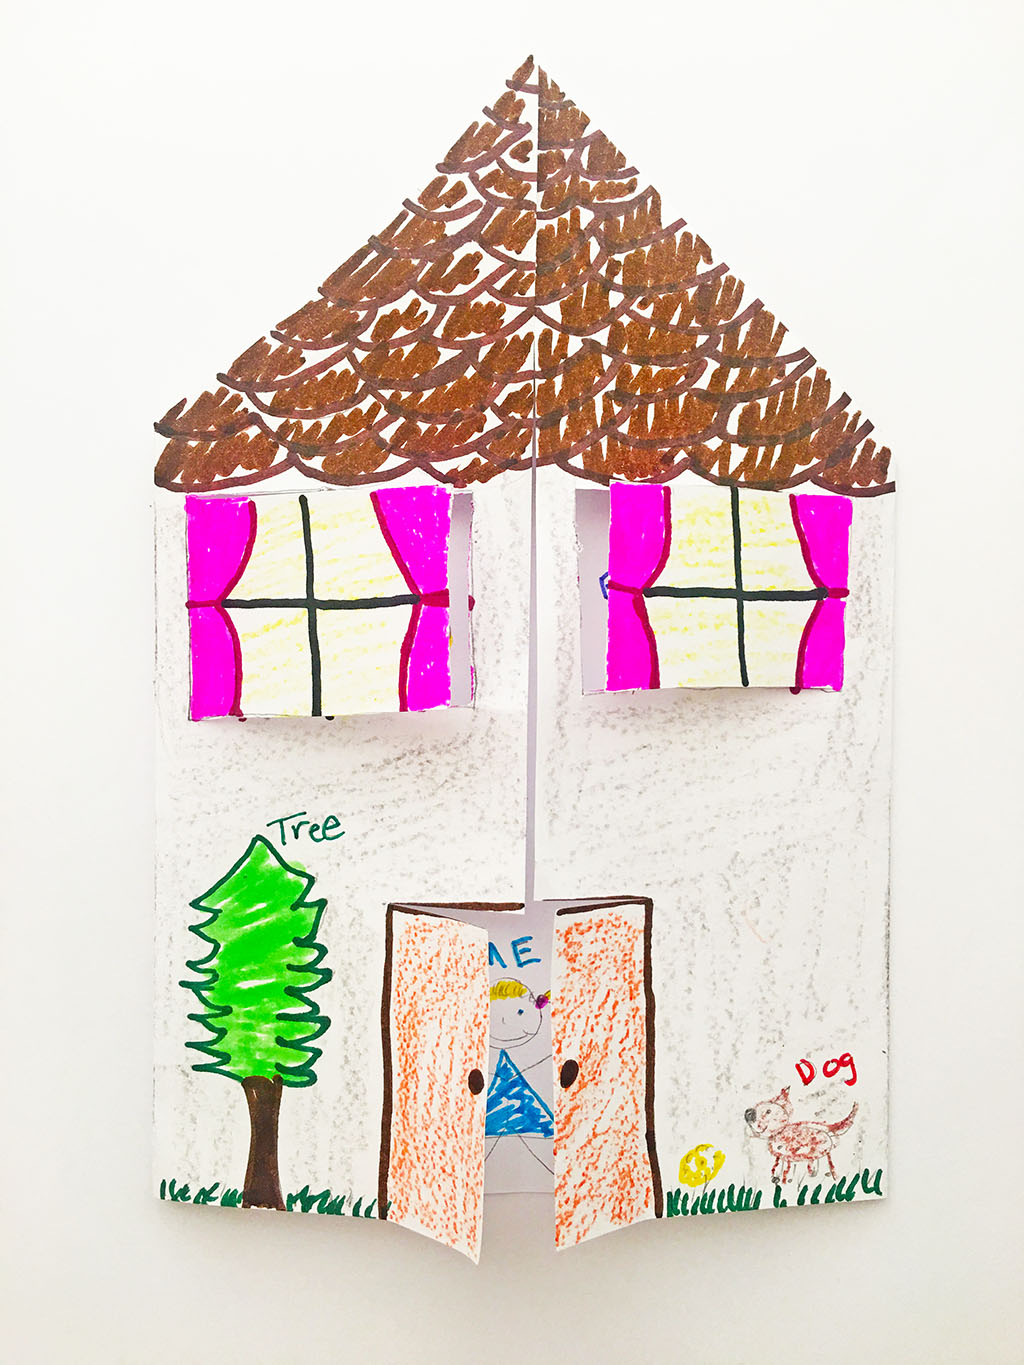 My Family Paper House Craft